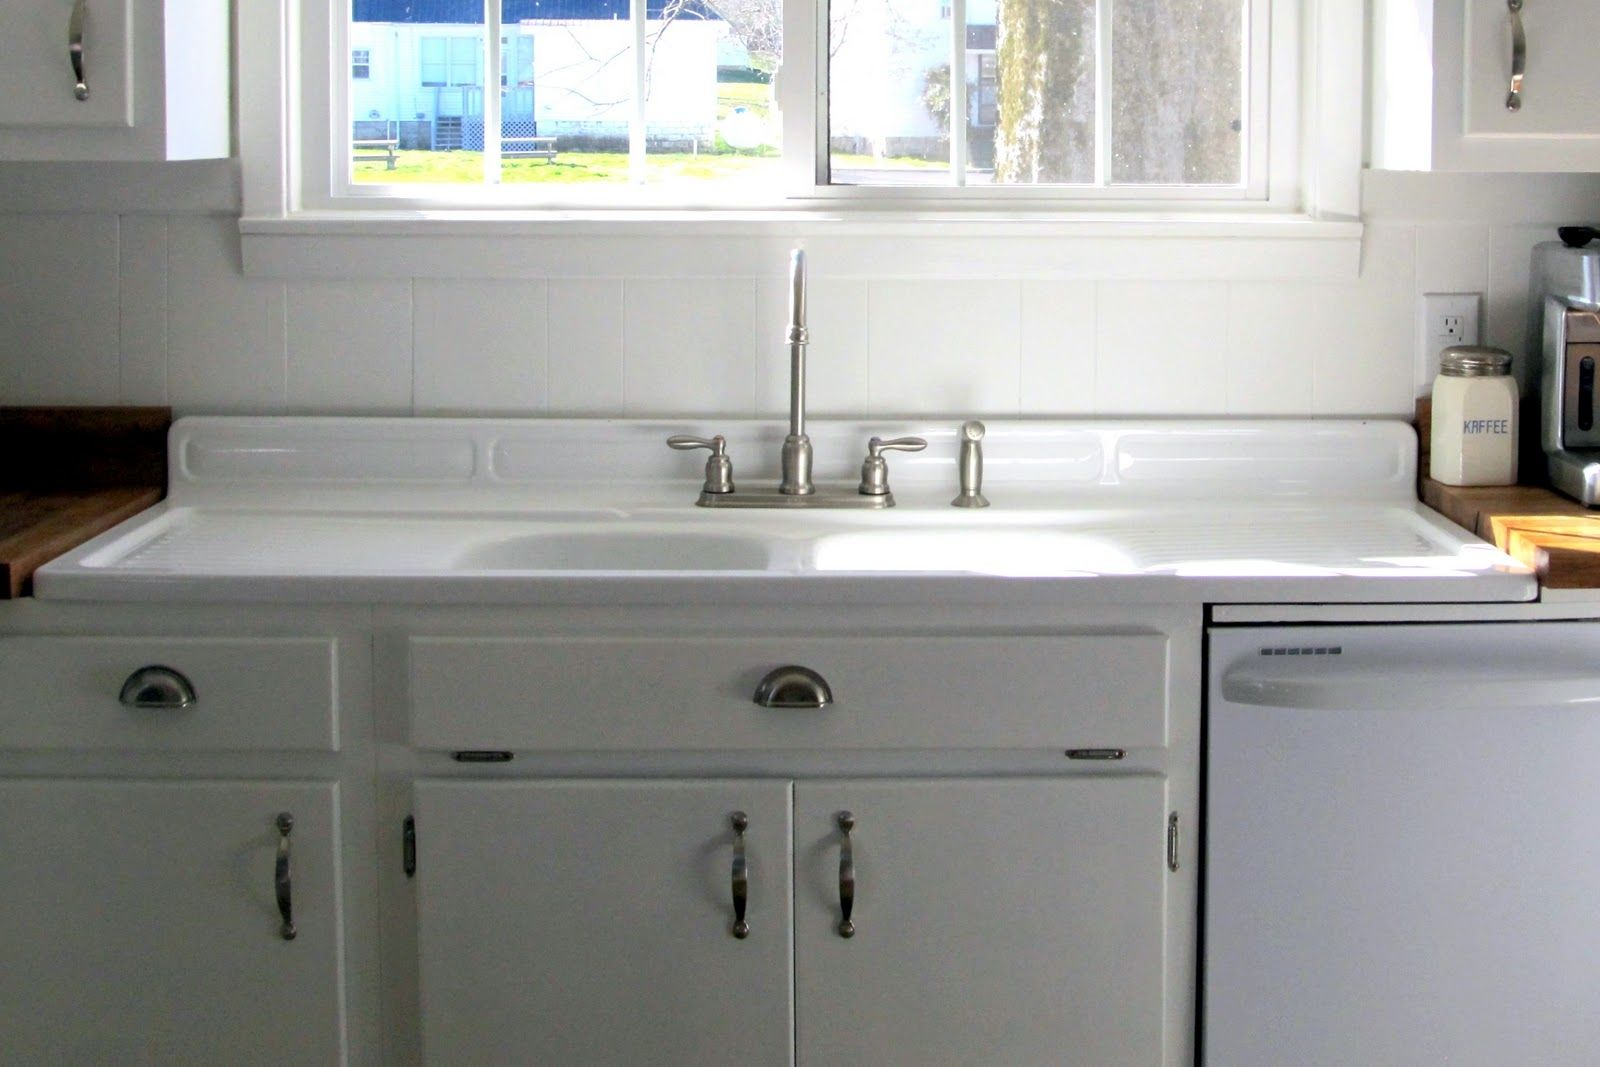 Sinks Interesting Farmhouse Sink With Drainboard And Backsplash Inside Size 1600 X 1067